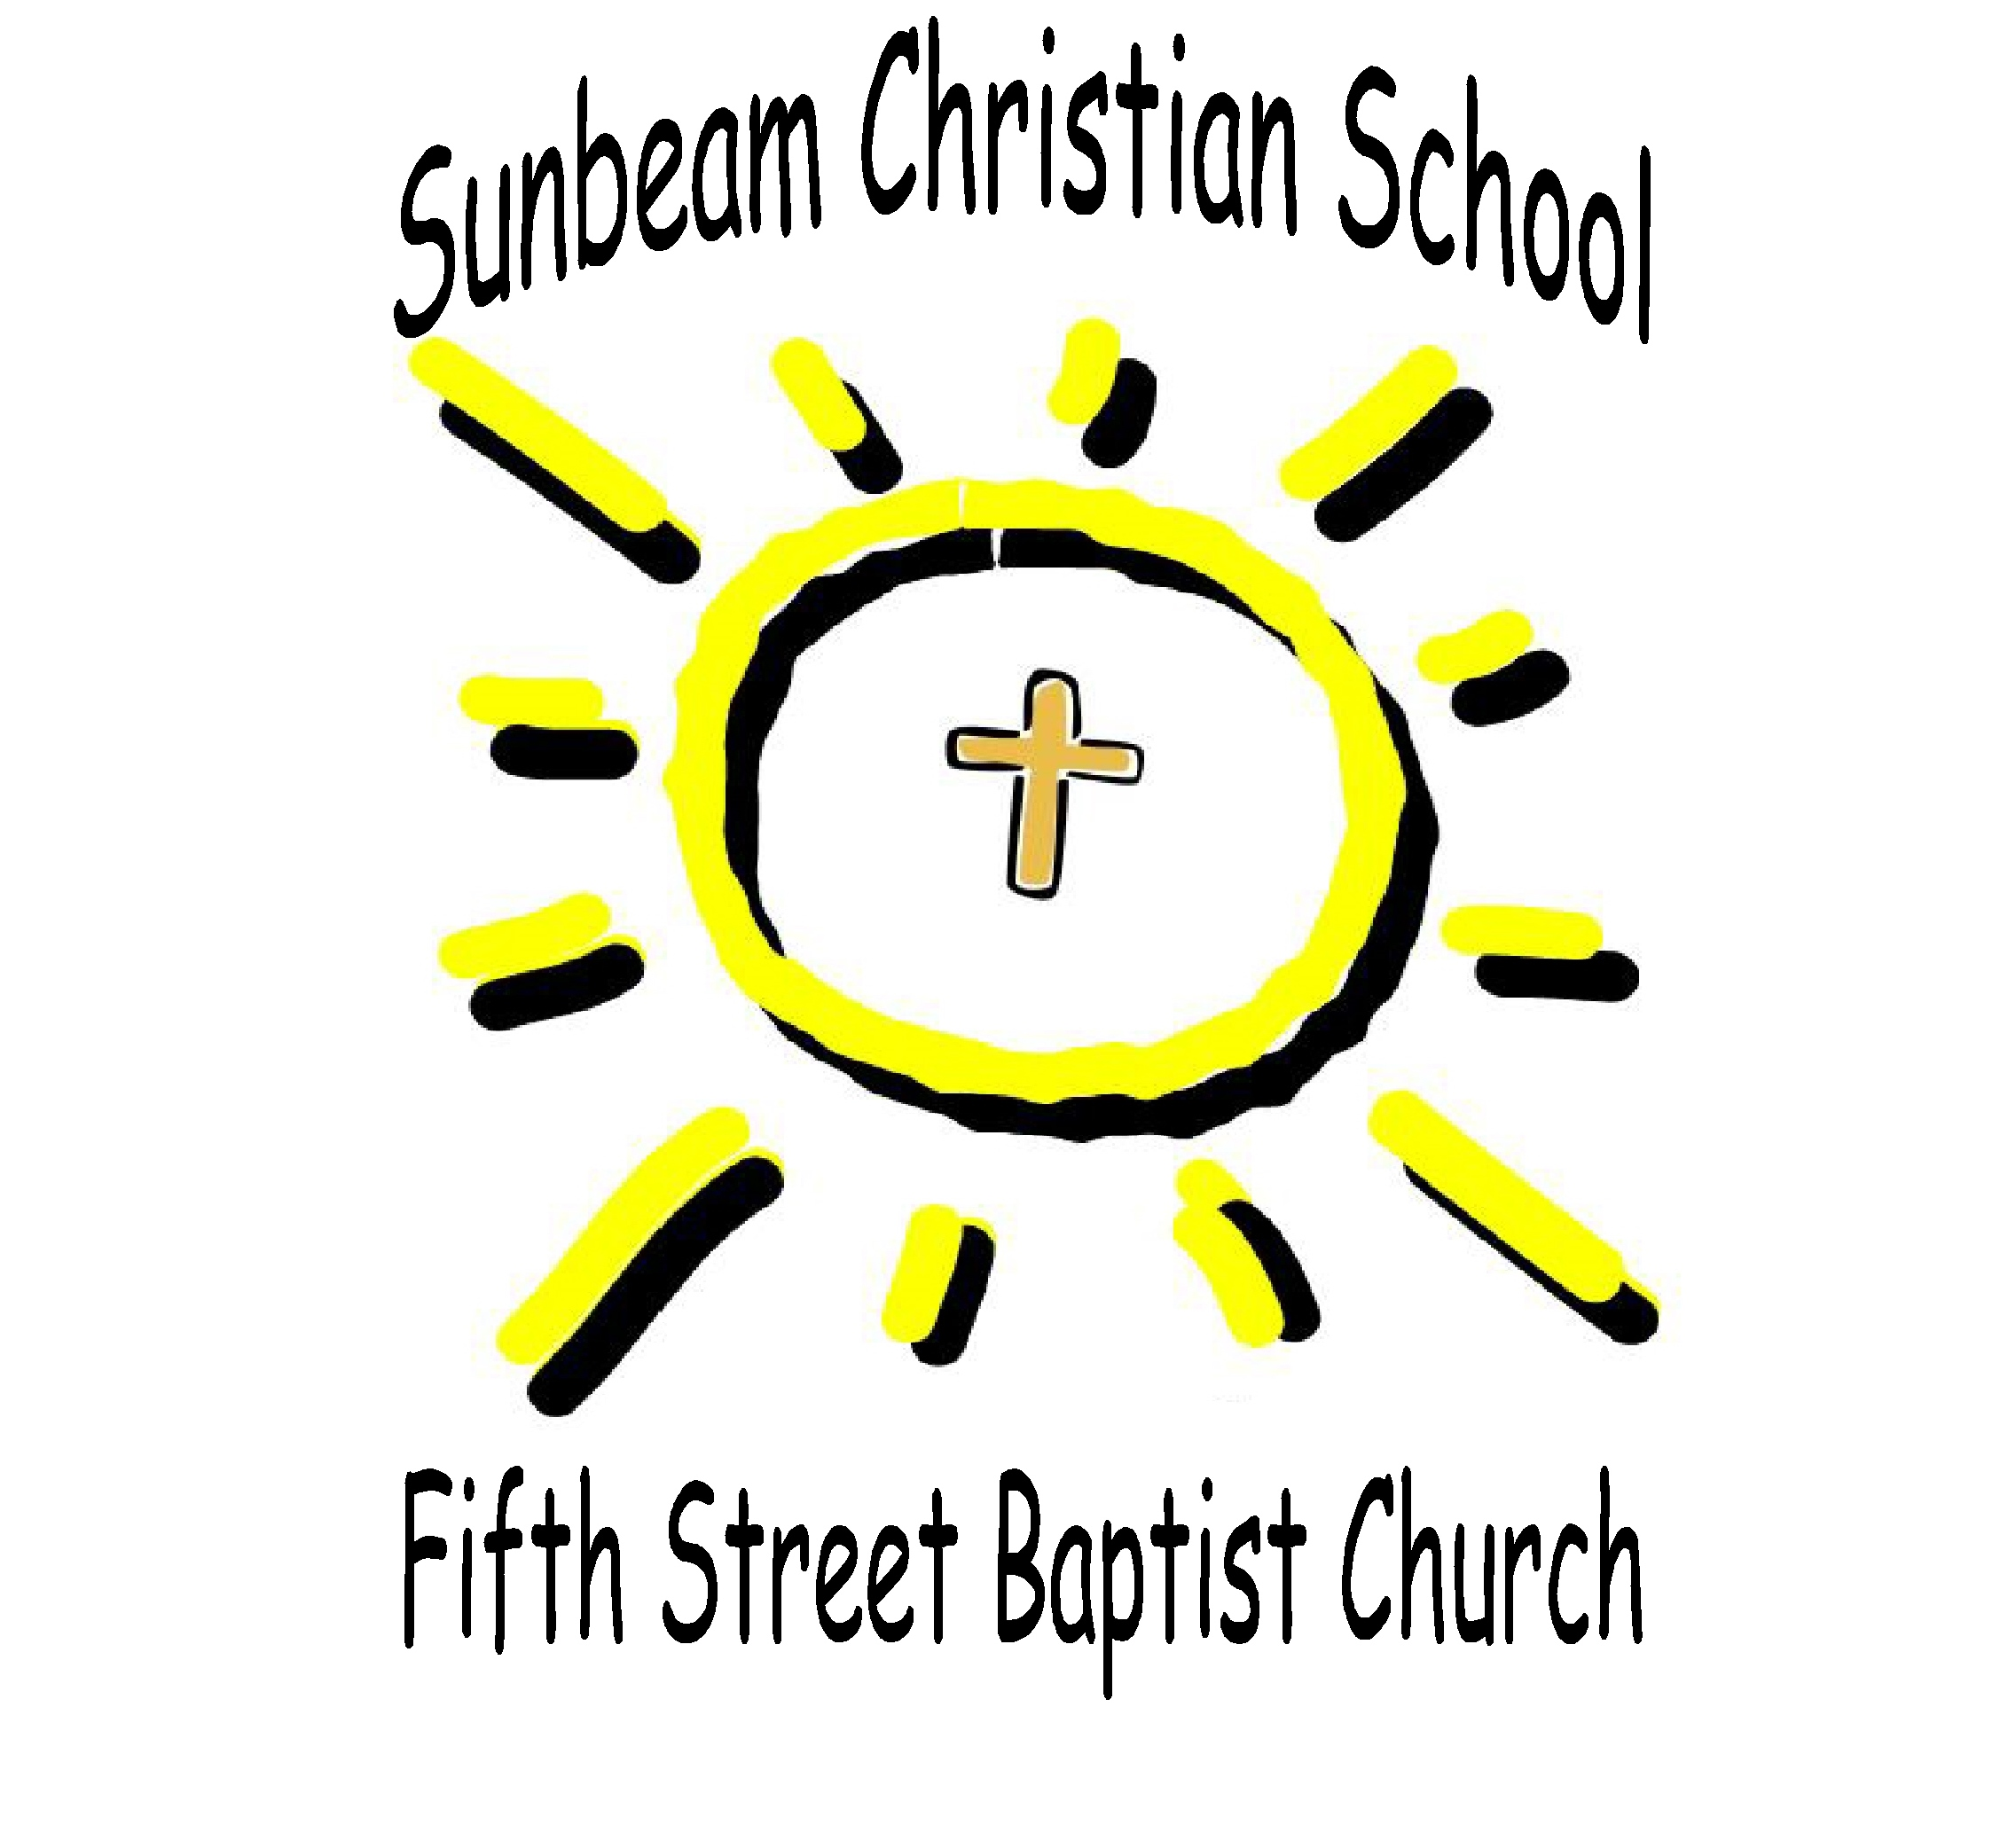 Sunbeam Christian School